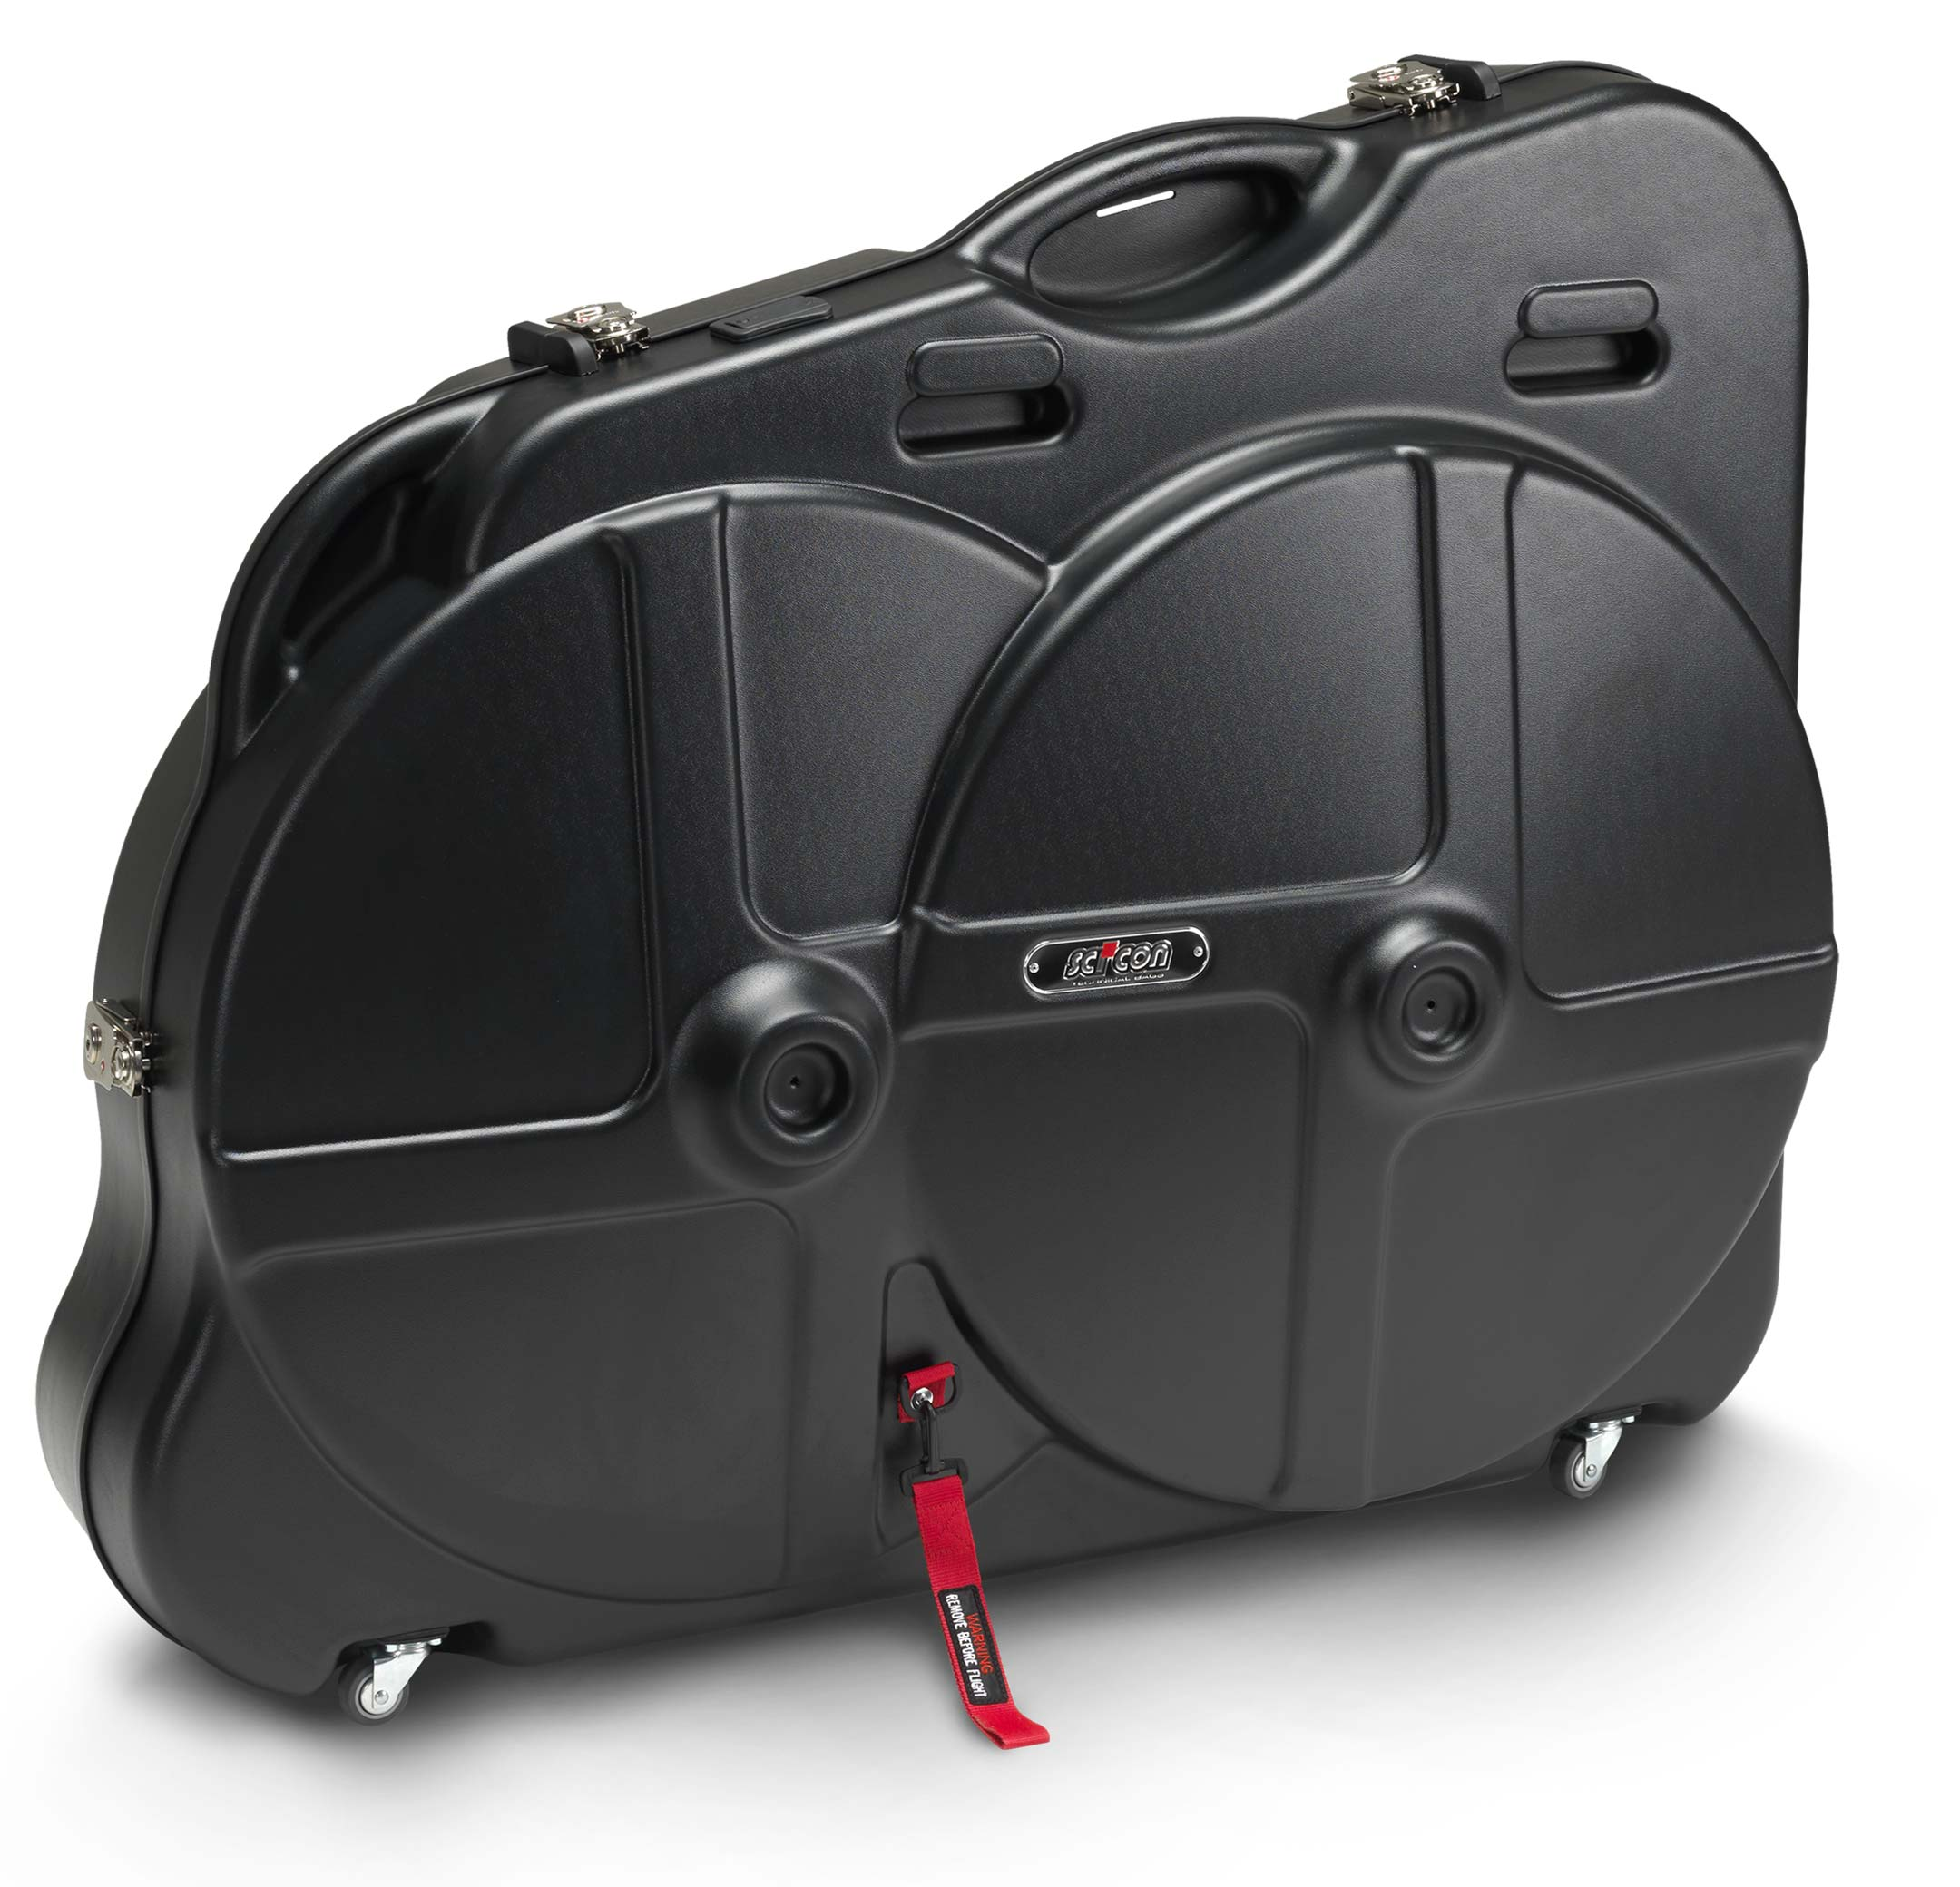 SCI CON AEROTECH EVOLUTION X TSA BIKE TRAVEL CASE